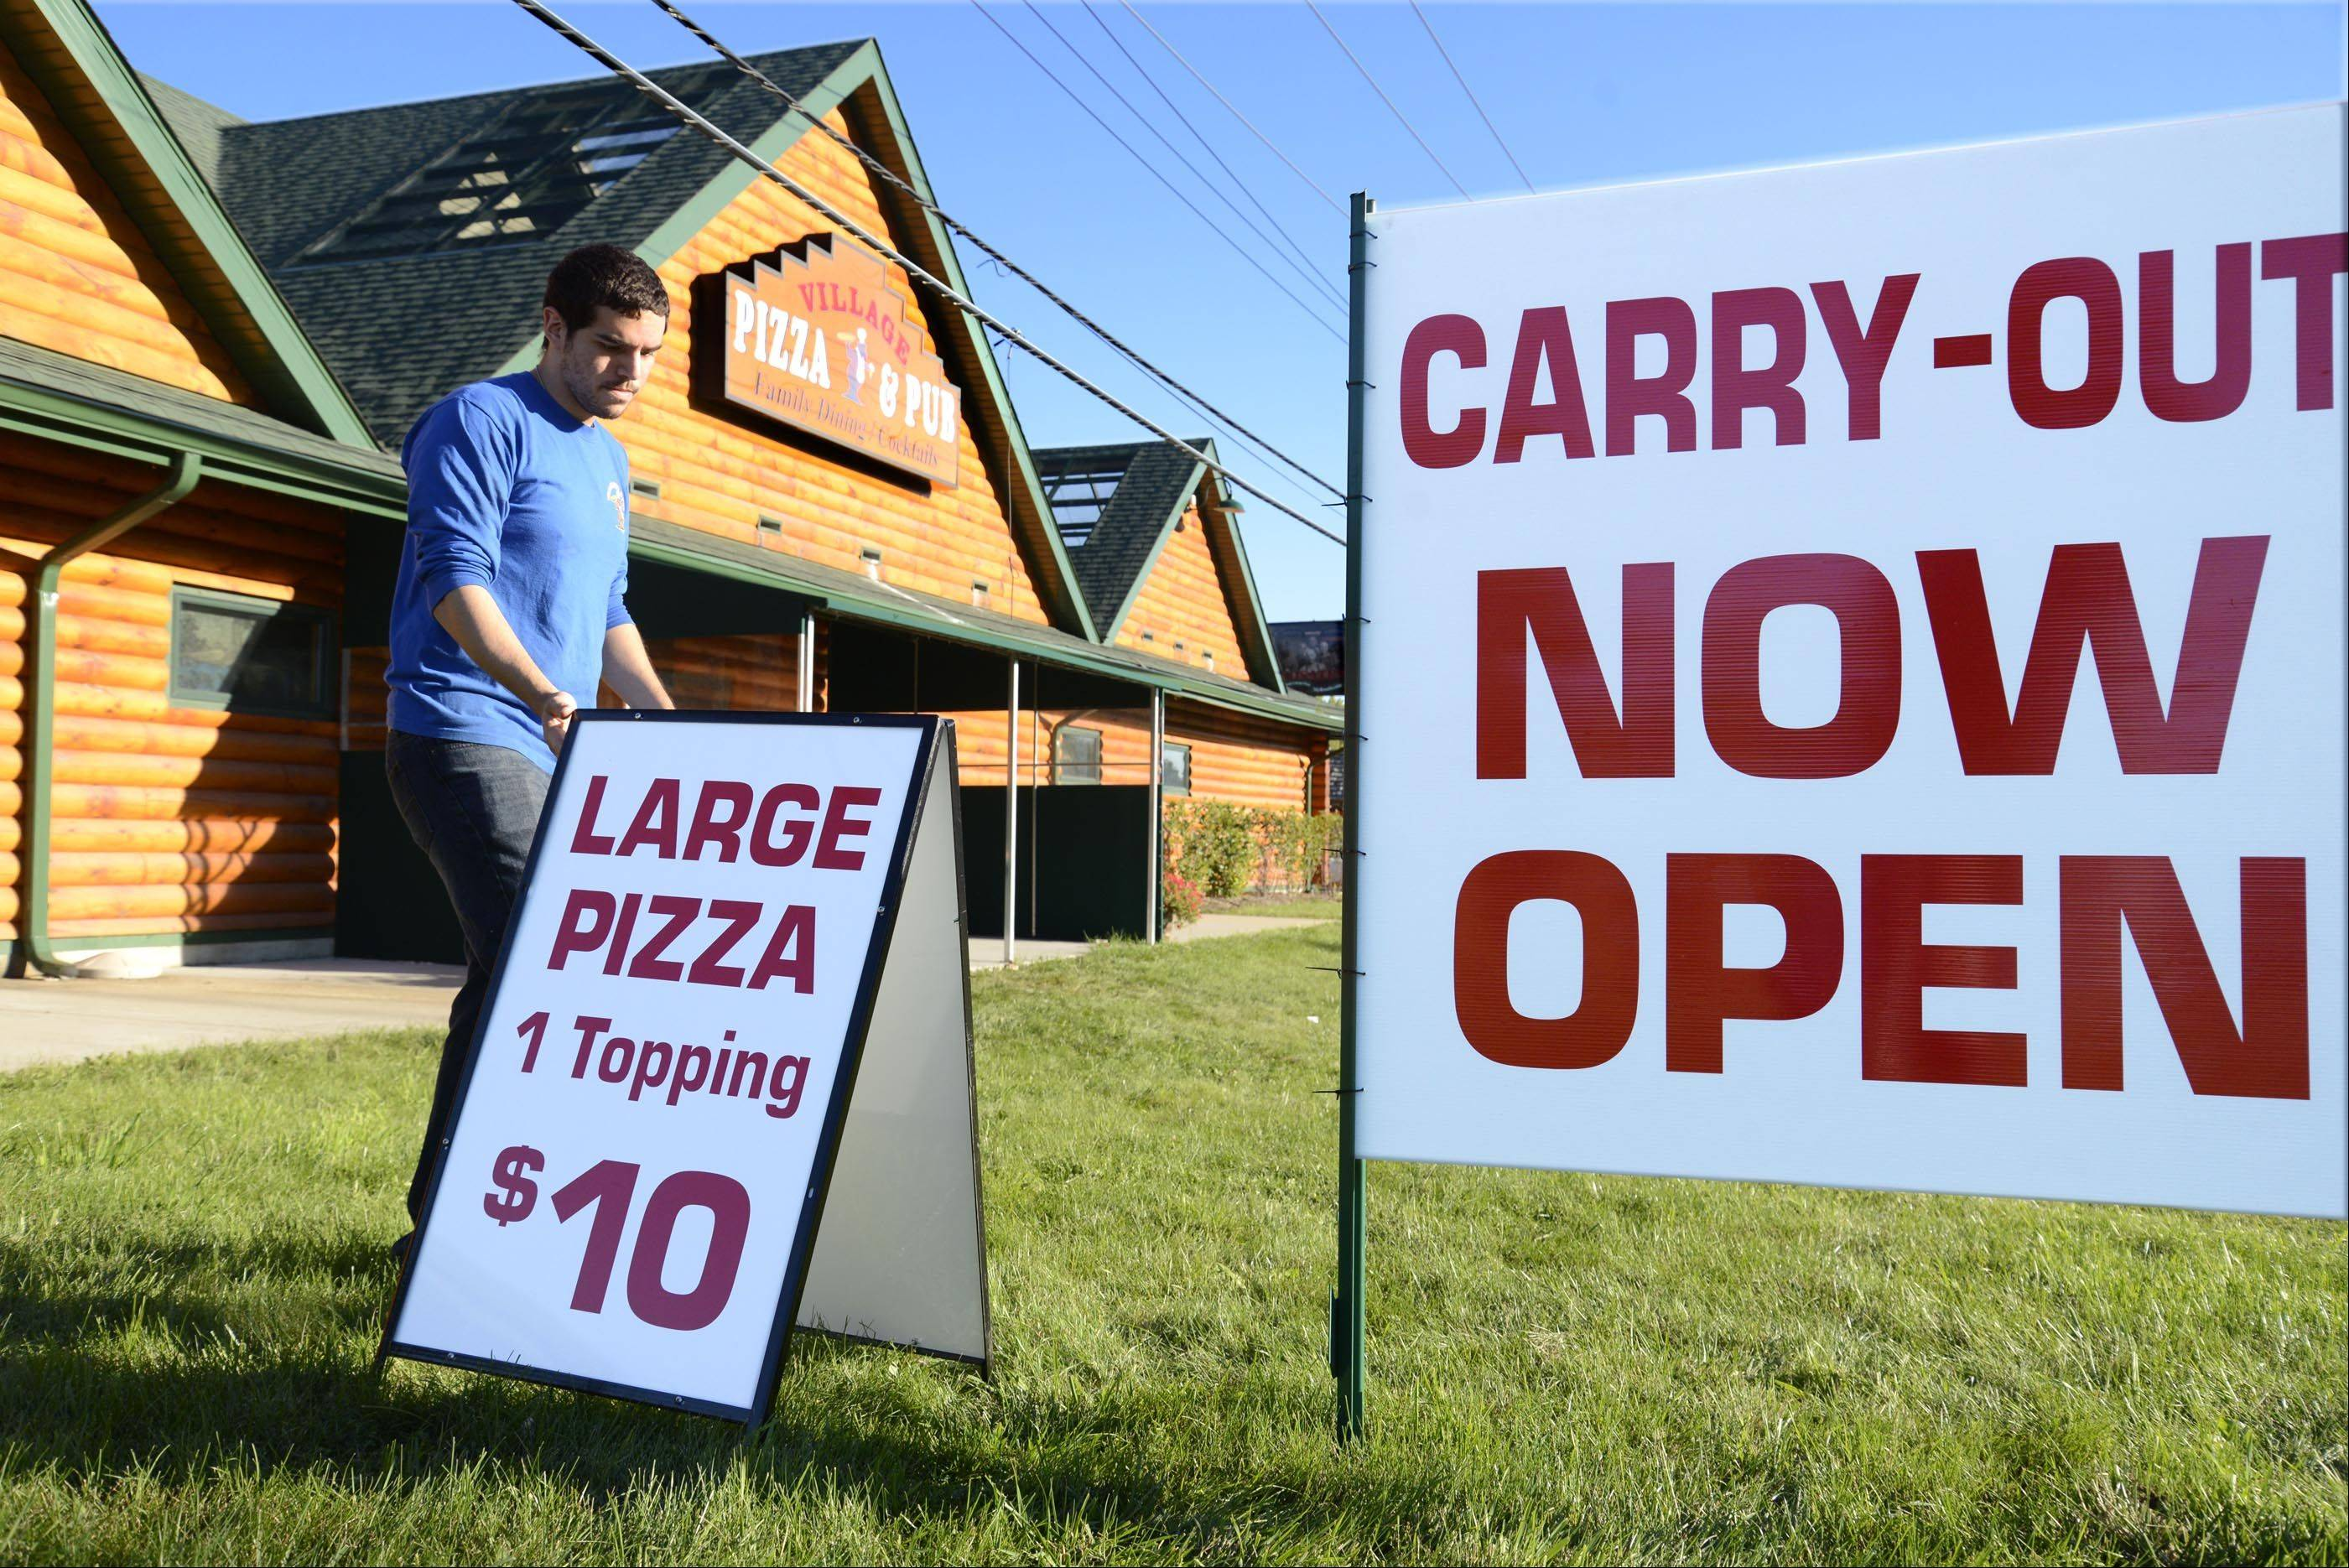 Michael Morino lets people know a portion of Village Pizza & Pub in Carpentersville has reopened.